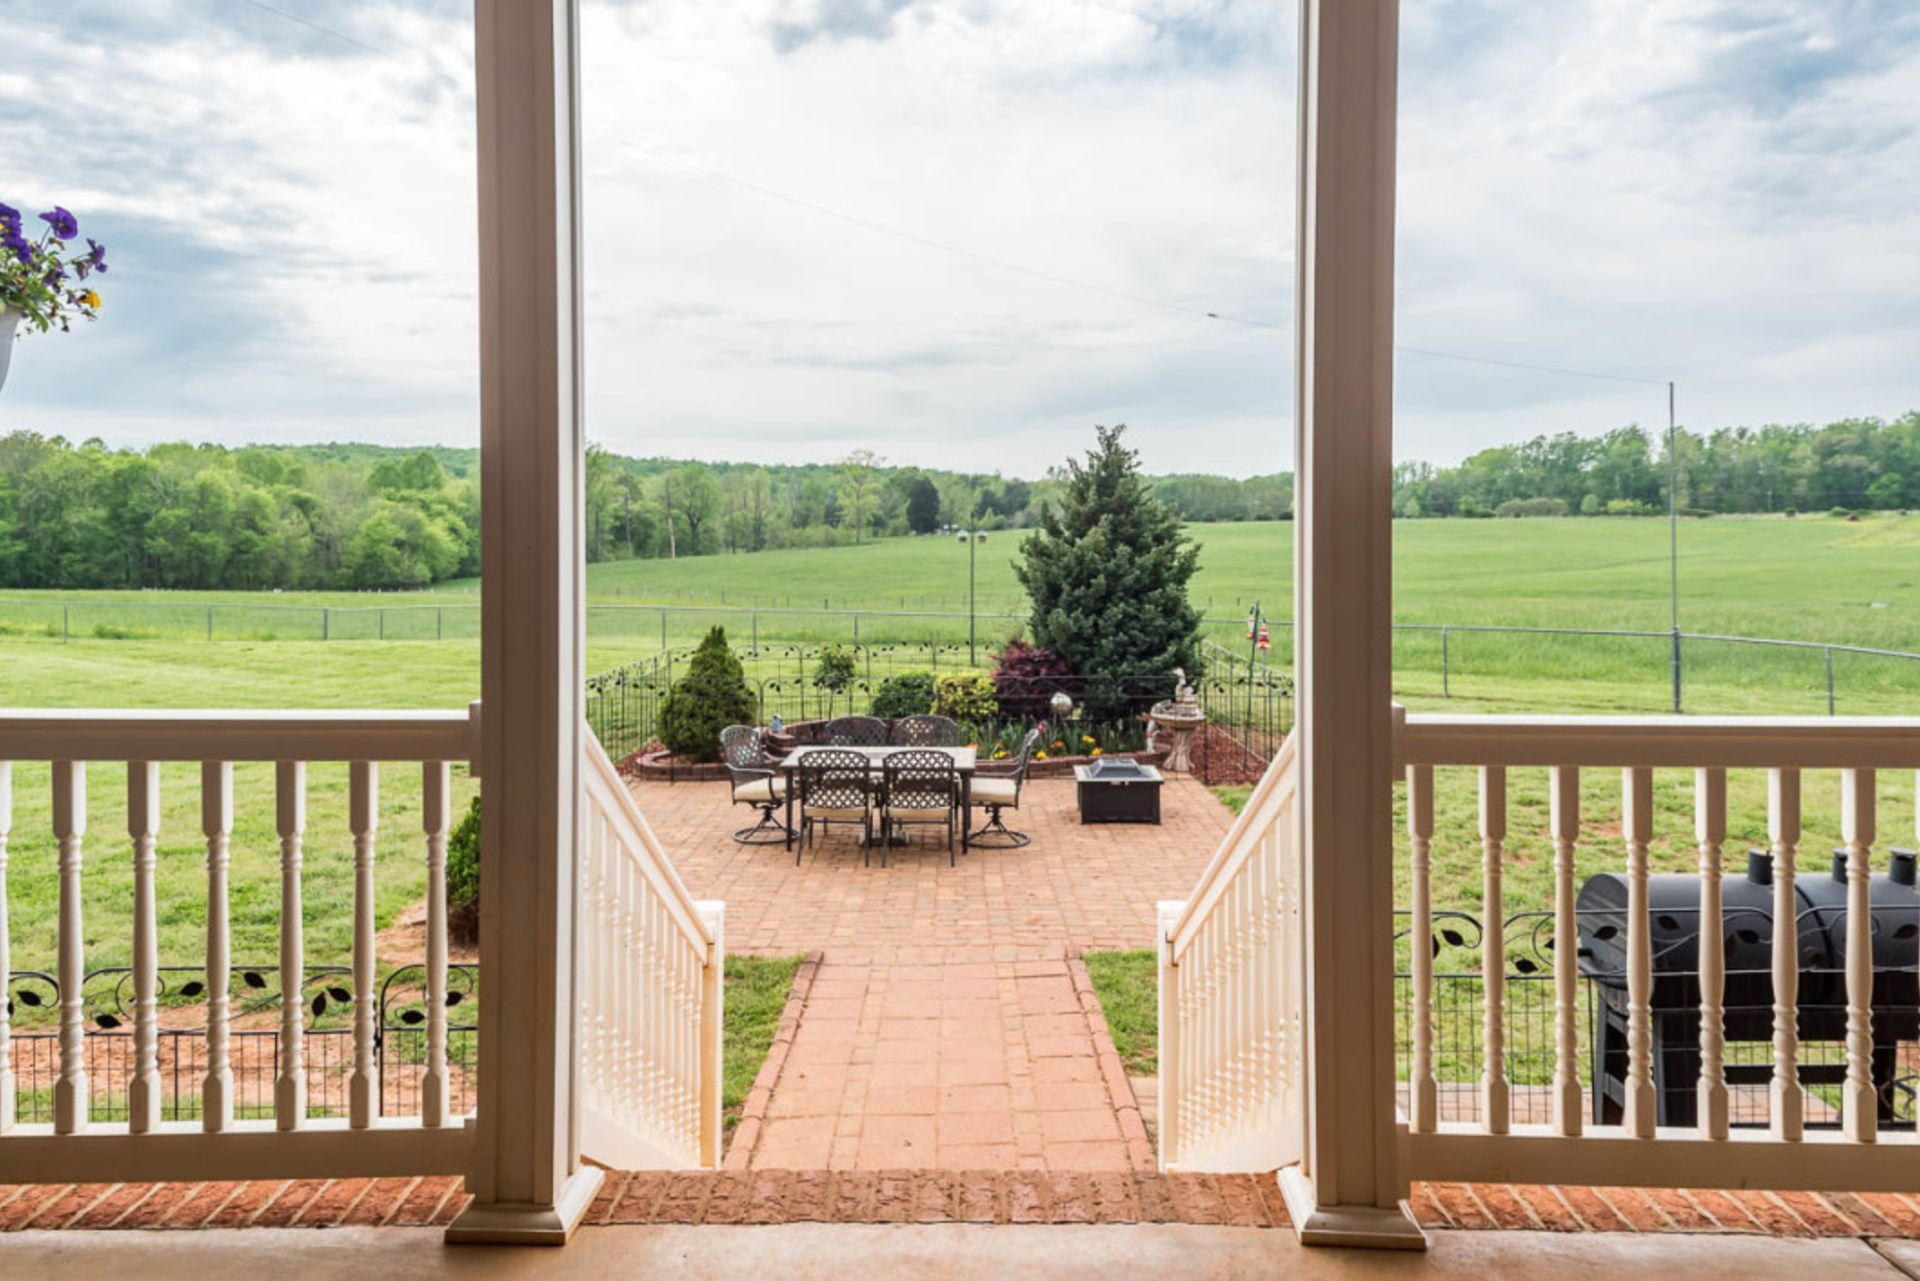 Stunning 25 acre property with wonderful landscaping and large barn with workshop